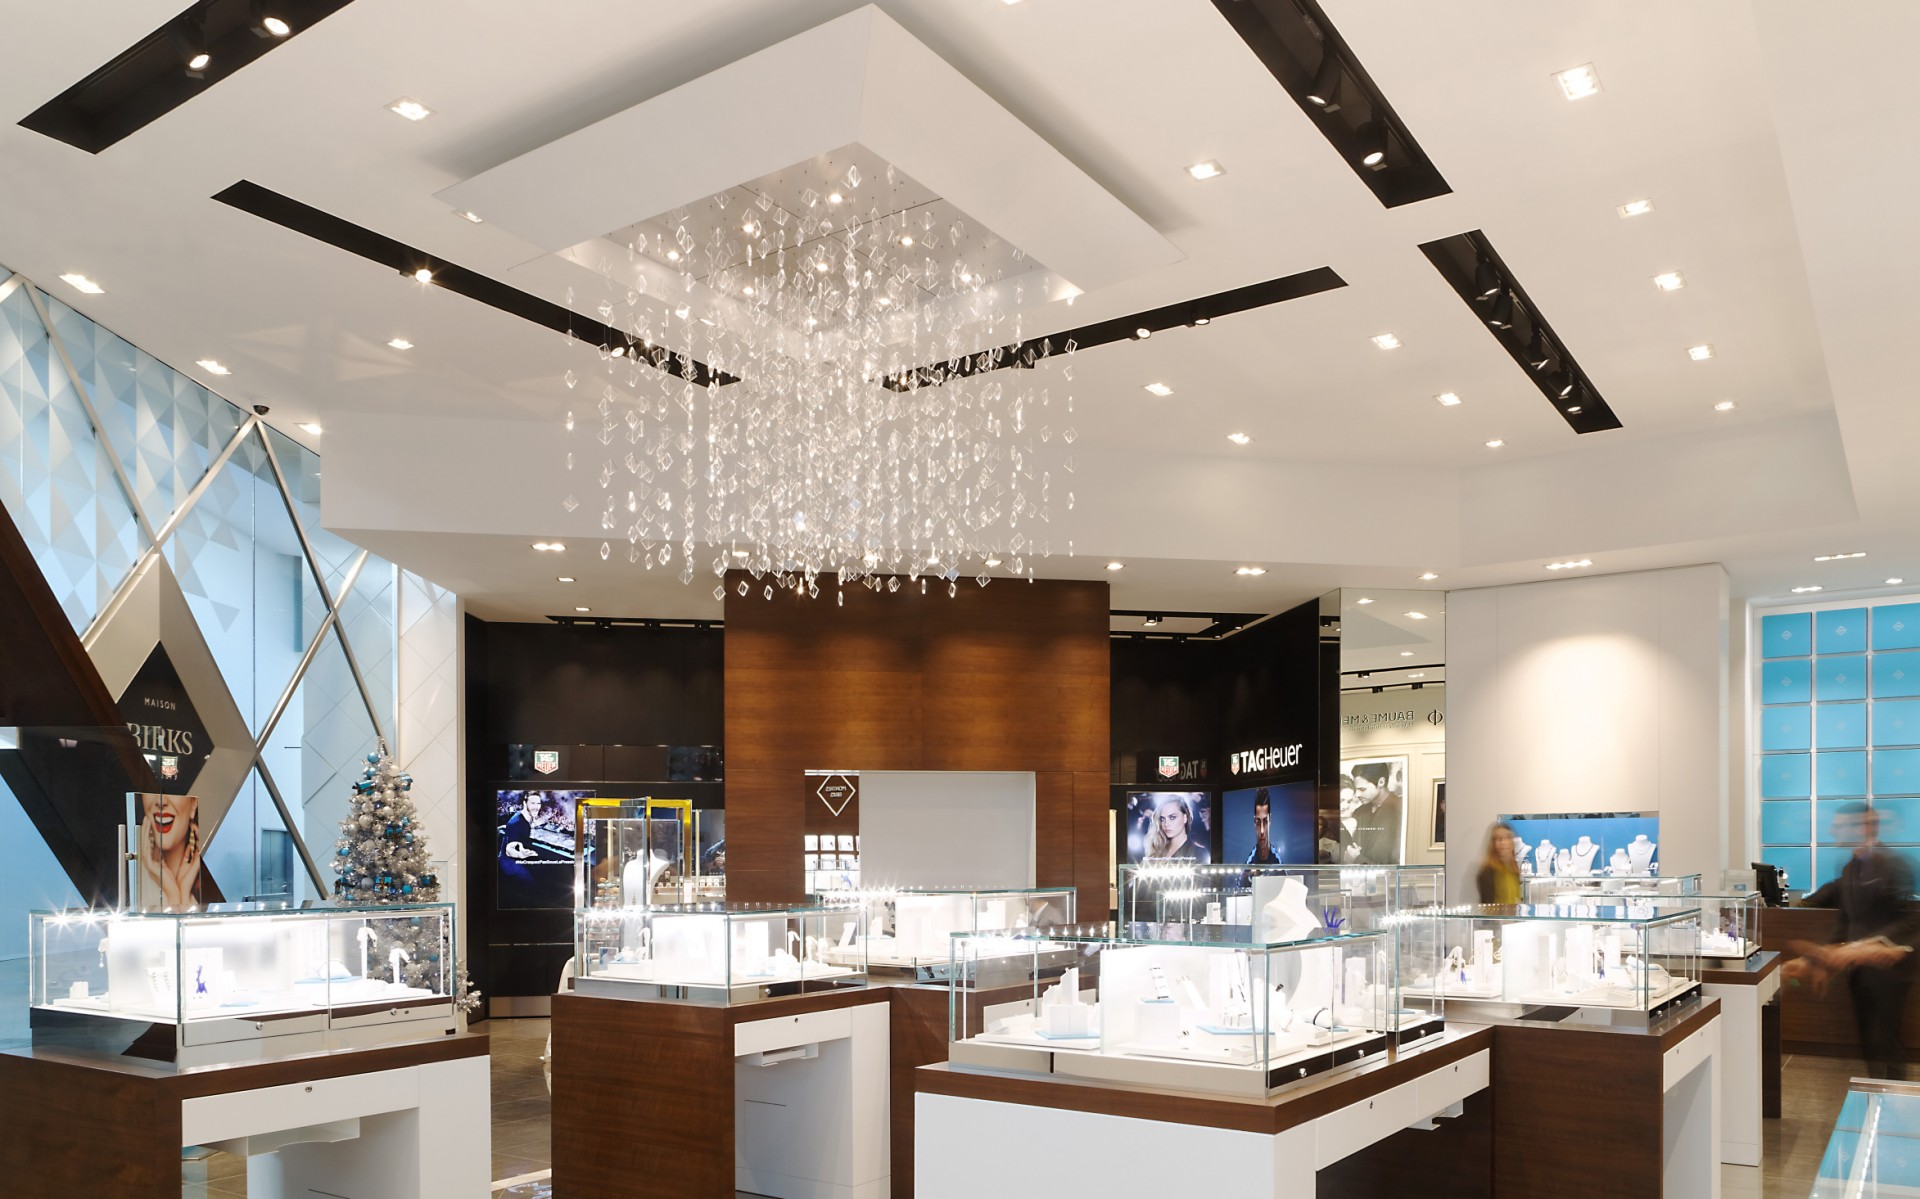 For its store in Laval, Quebec, the company wanted a flexible, new lighting system that would help bring out the best in their products.